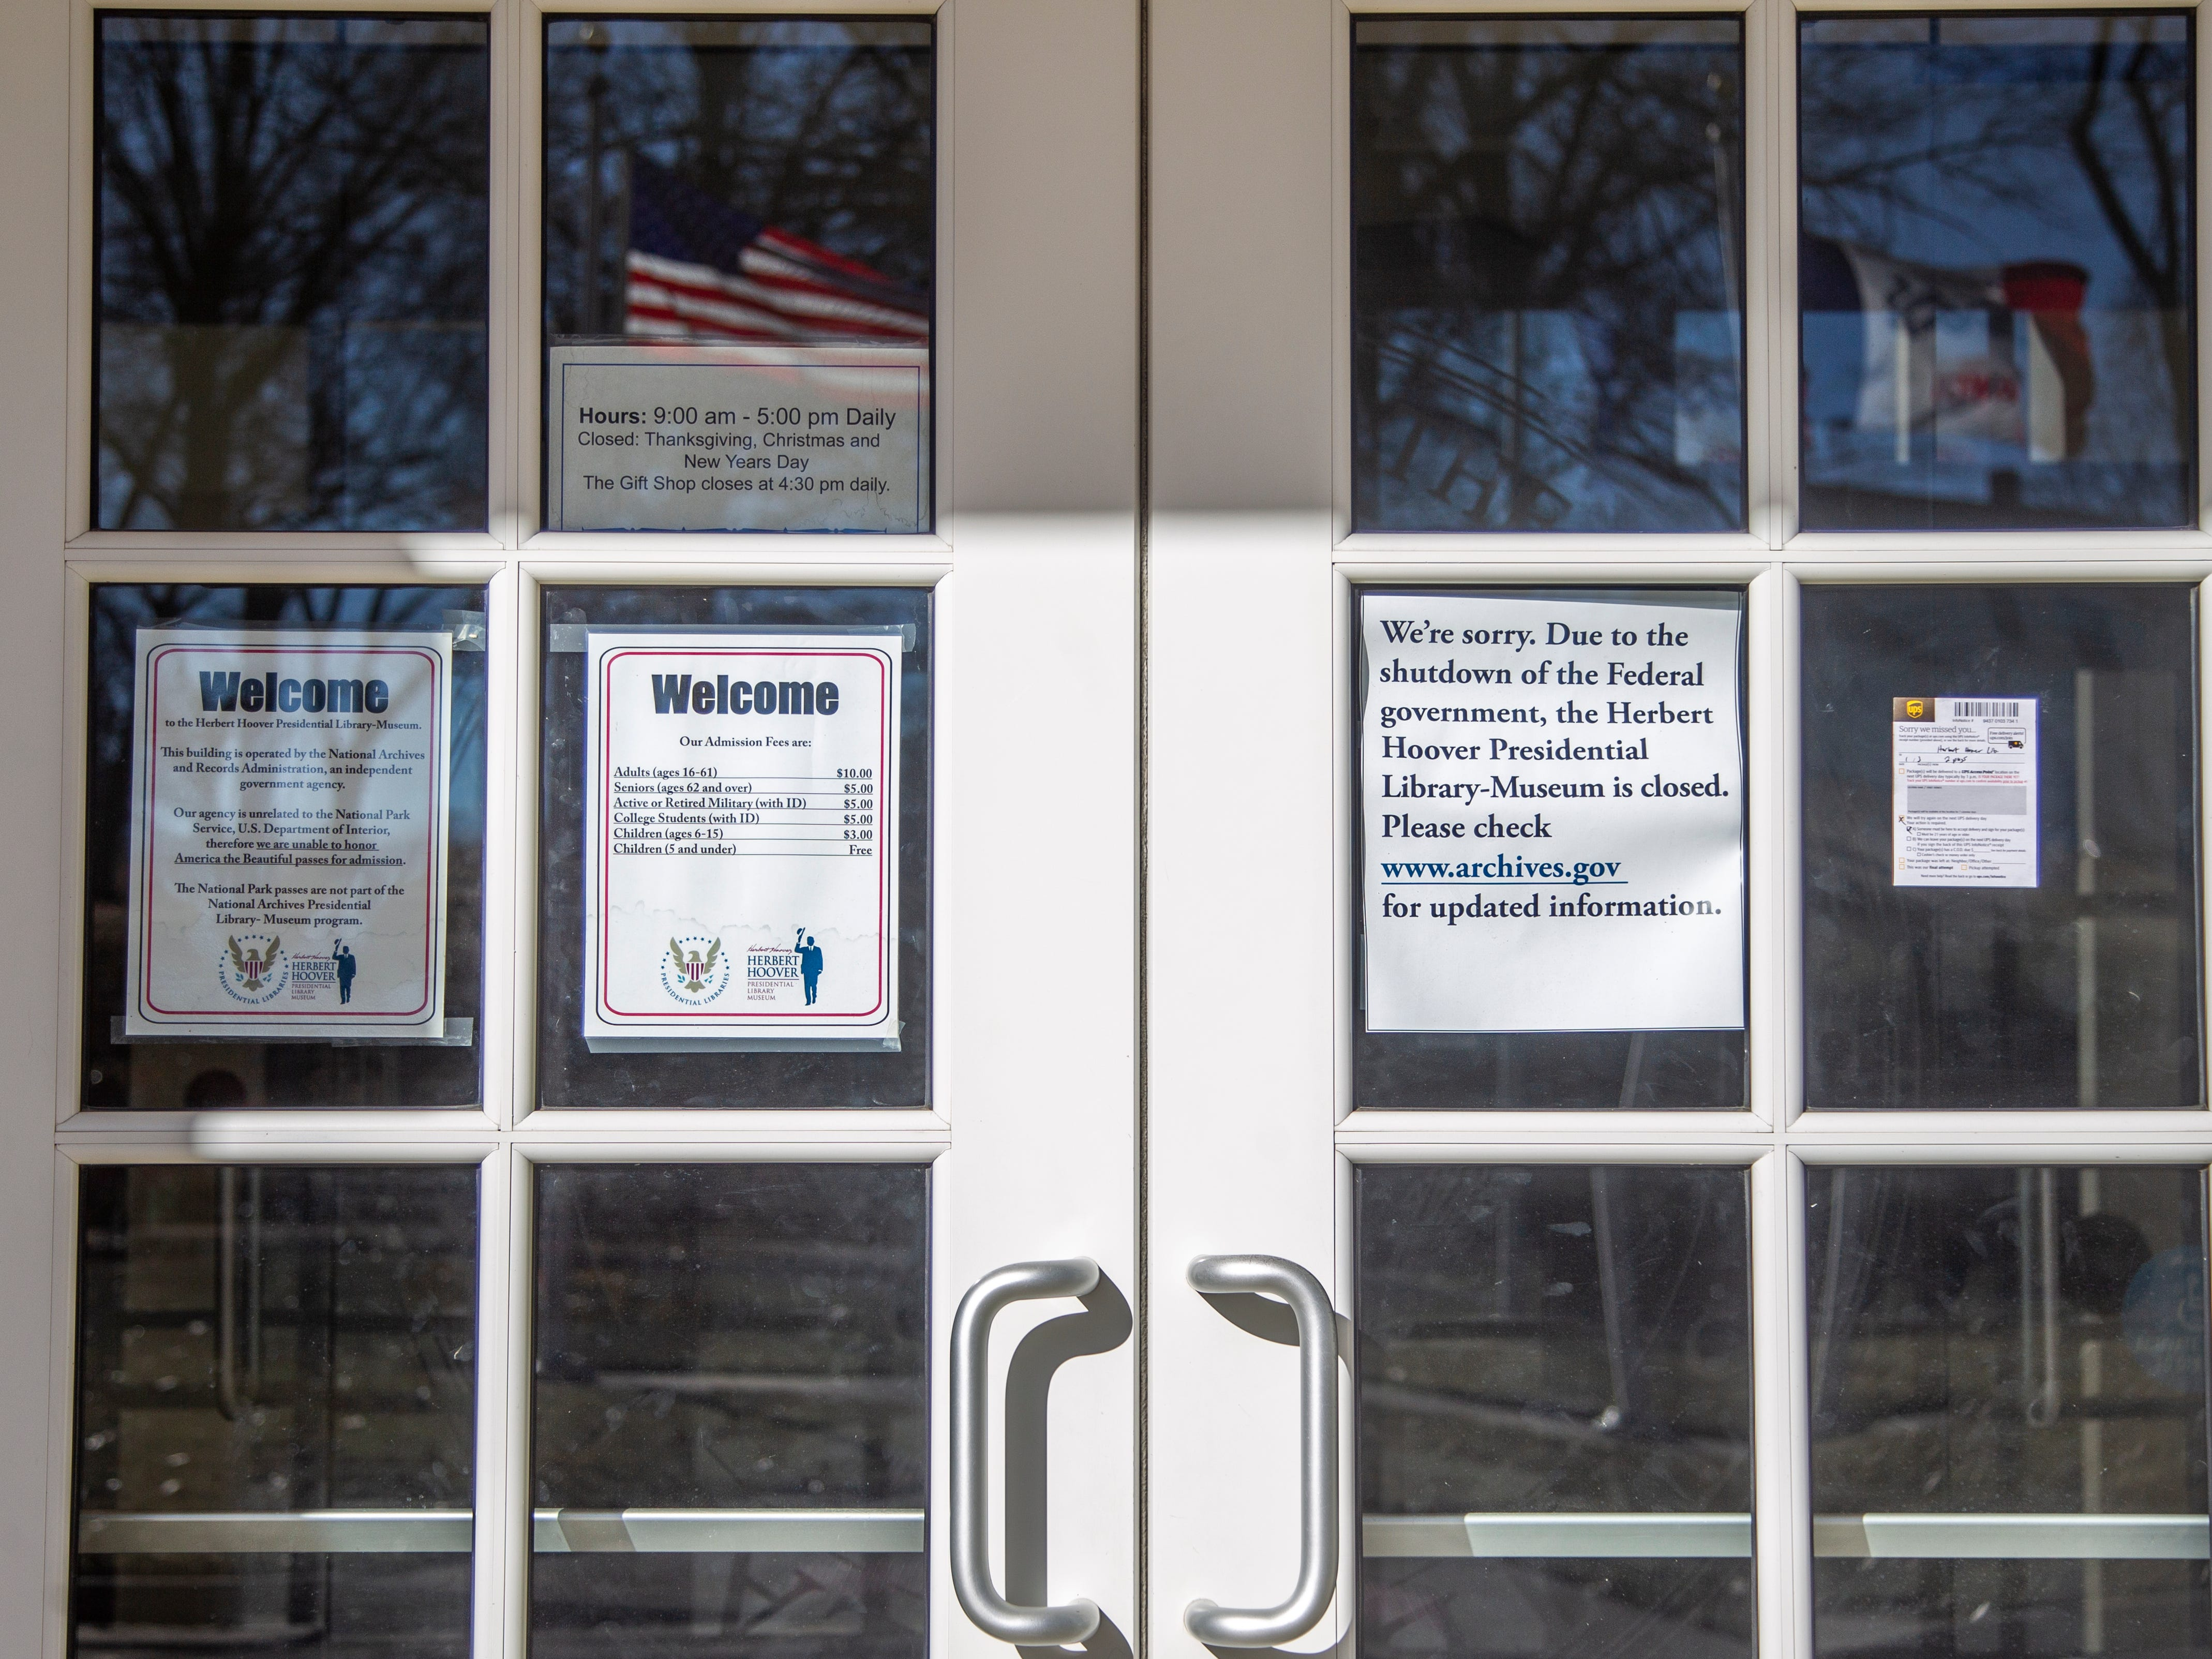 Welcome signs hang opposite a piece of paper notifying guests about the government shutdown on Thursday, Jan. 3, 2019, at the Herbert Hoover Presidential Library-Museum in West Branch, Iowa.